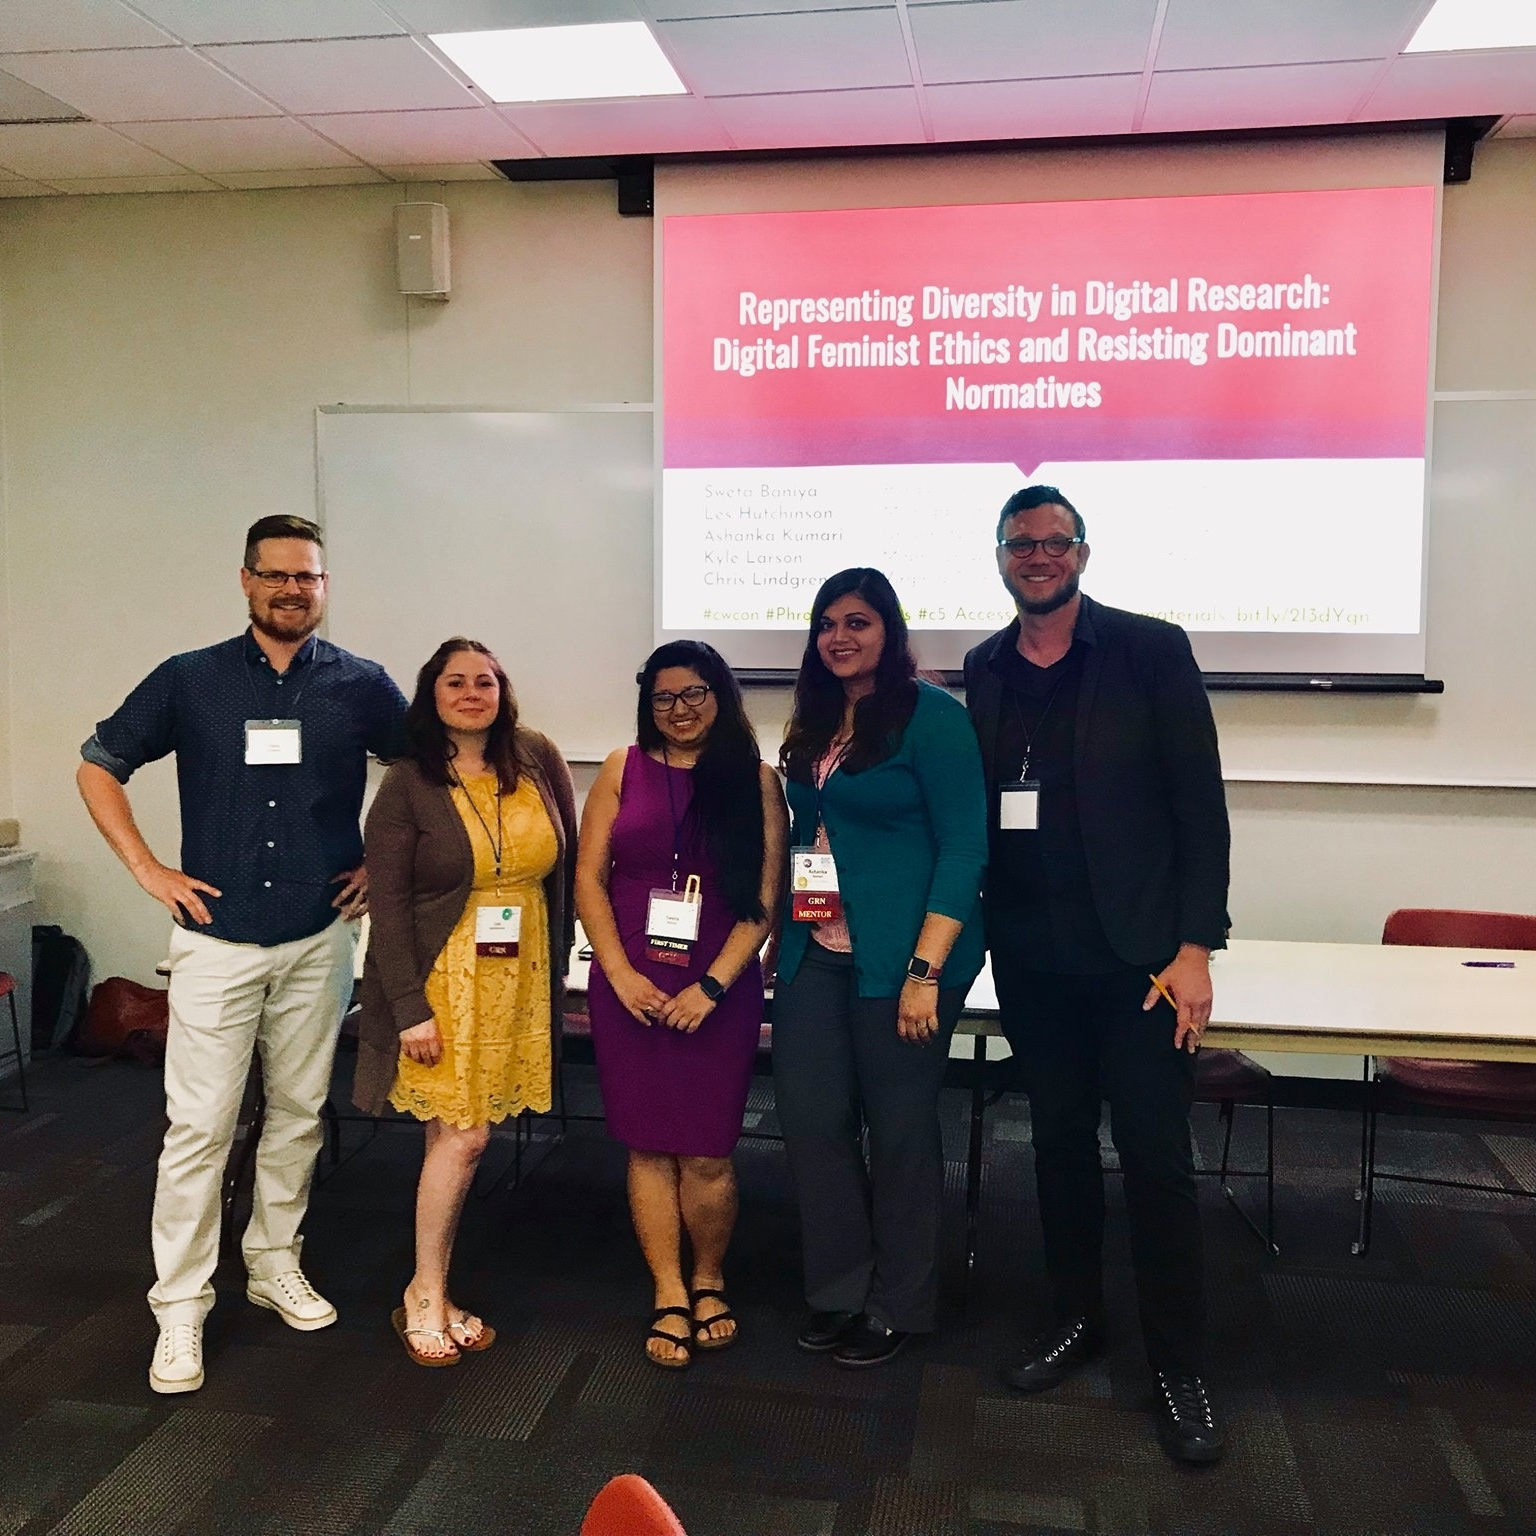 Computers and Writing 2018 - Pictured here (left to right): Chris Lindgren, Les Hutchinson, Sweta Baniya, Ashanka Kumari, and Kyle Larson stand in front of a projector screen displaying their opening powerpoint slide for their Computers and Writing Roundtable on representing diversity in digital research.Baniya, Sweta, Les Hutchinson, Ashanka Kumari, Kyle Larson, and Chris Lindgren.